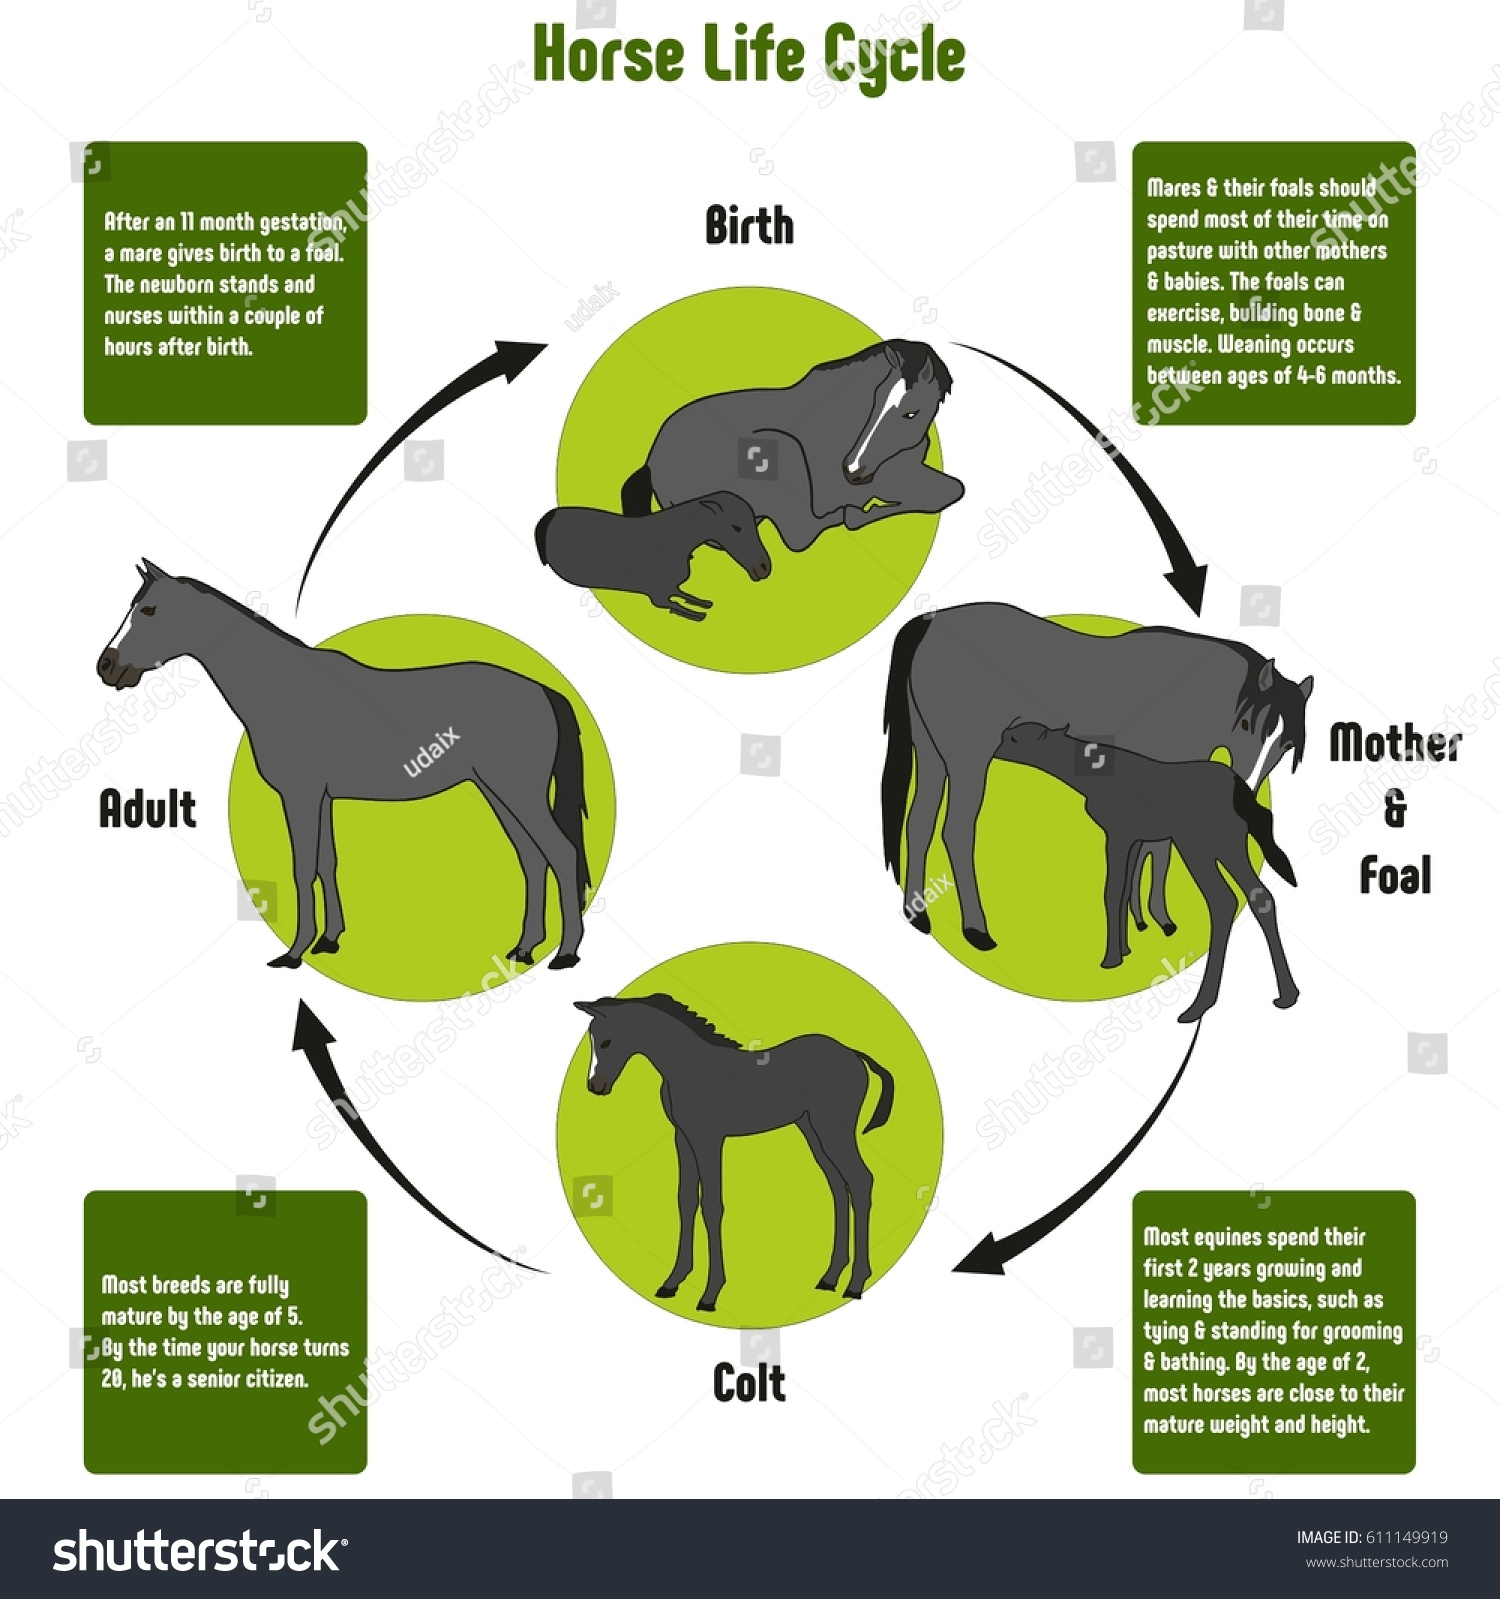 Horse life cycle diagram all stages stock vector 611149919 horse life cycle diagram with all stages including birth mother and foal colt and adult simple pooptronica Choice Image